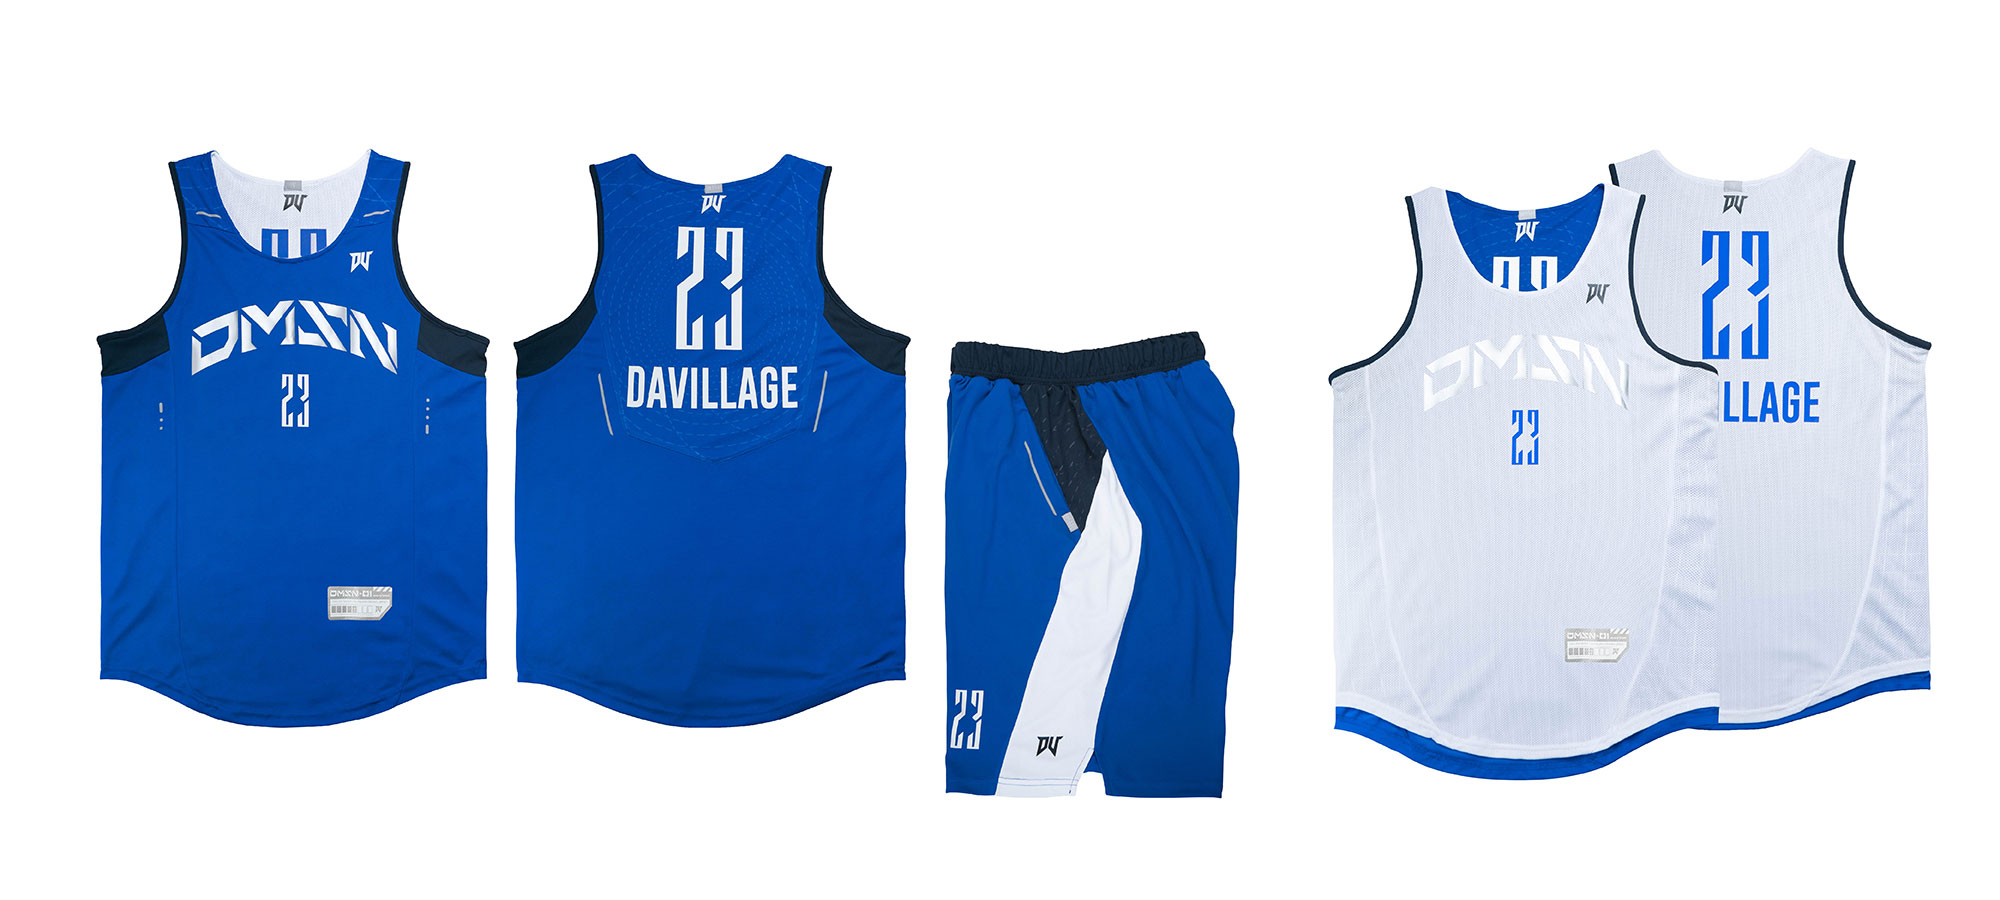 jersey-basketball-dimensional1-blue-white-demo-product